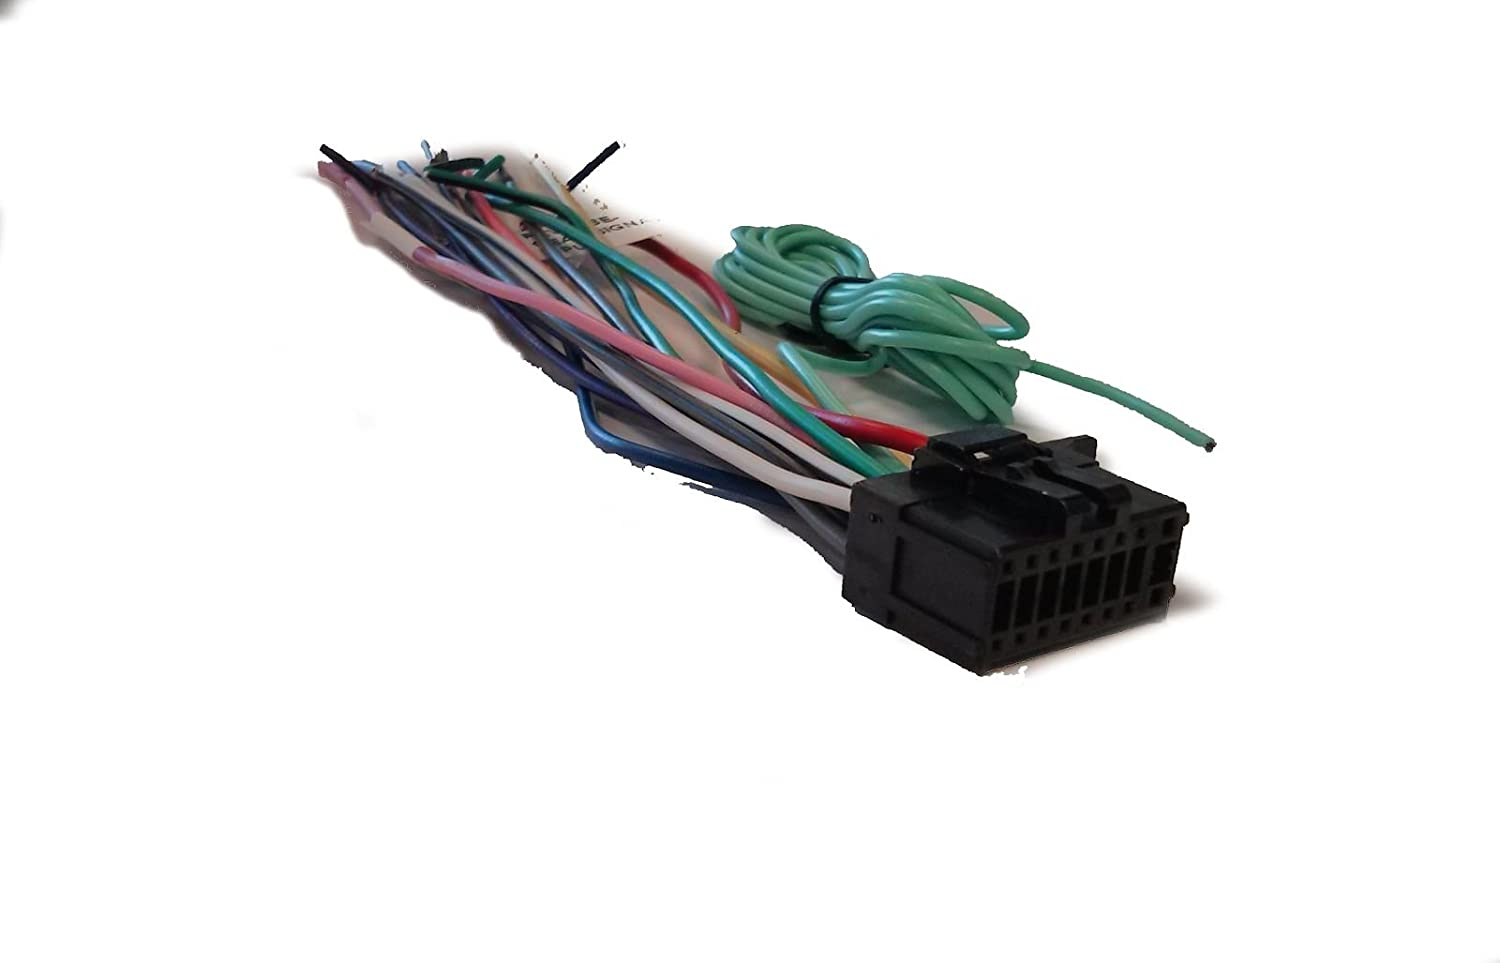 61s%2B2yUu BL._SL1500_ amazon com pioneer wire harness for sph da210 sph da100 sph da200 pioneer sph da210 wiring harness at readyjetset.co